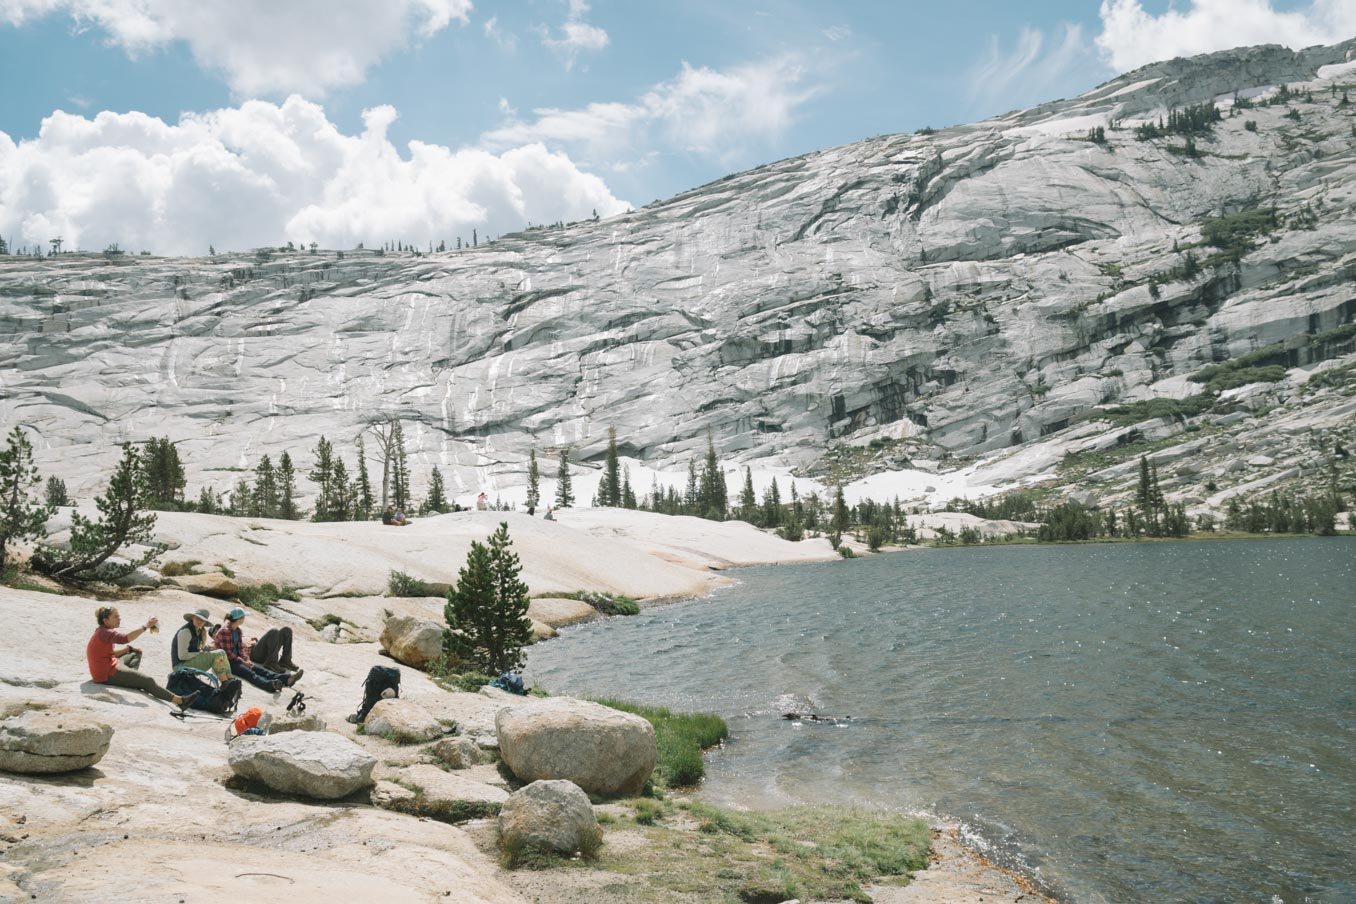 Hikers enjoy a rest sitting on a lake next to a mountain.